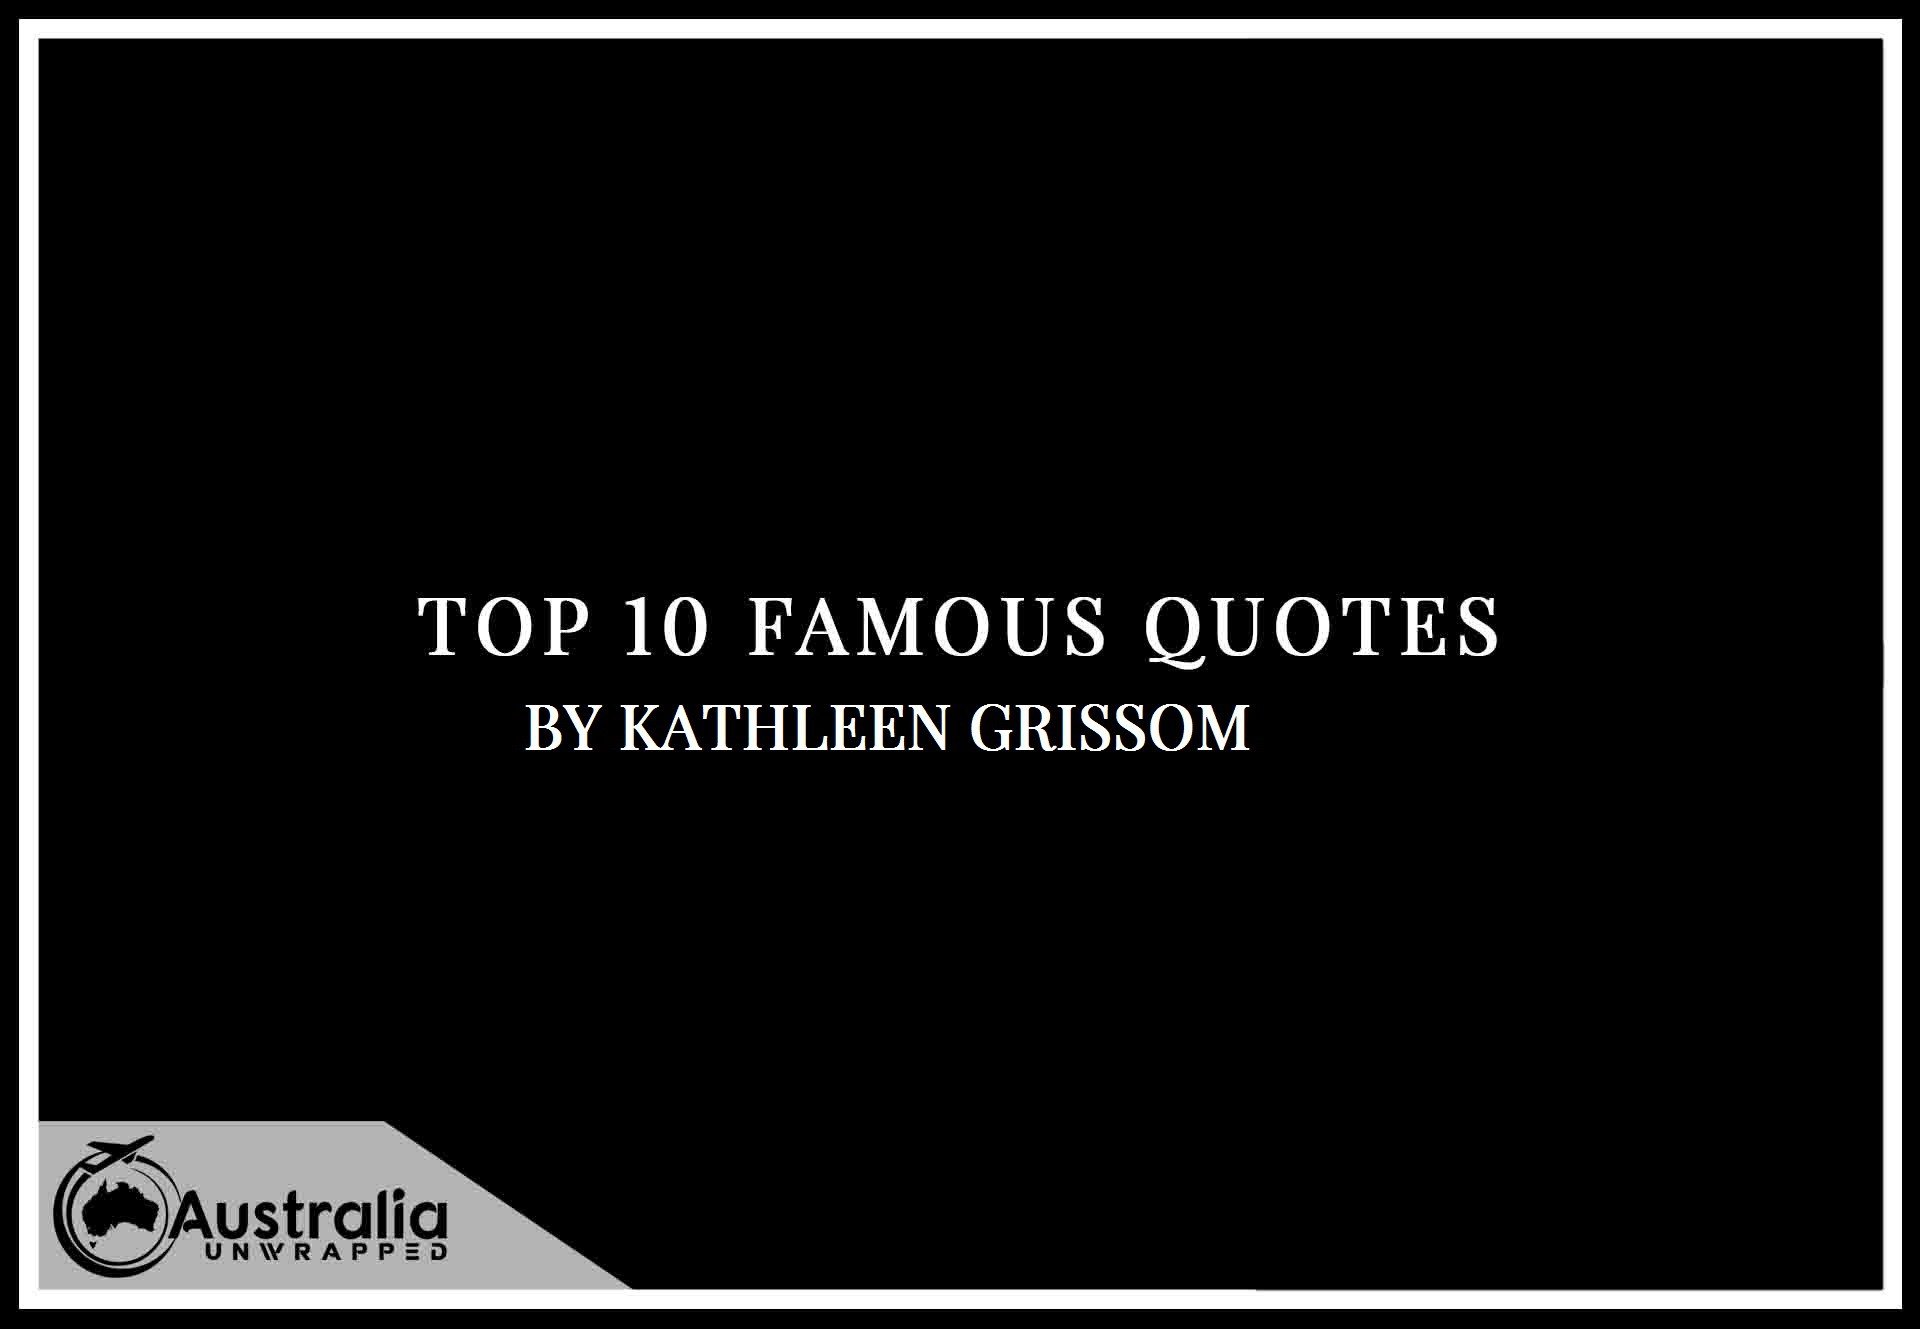 Kathleen Grissom's Top 10 Popular and Famous Quotes